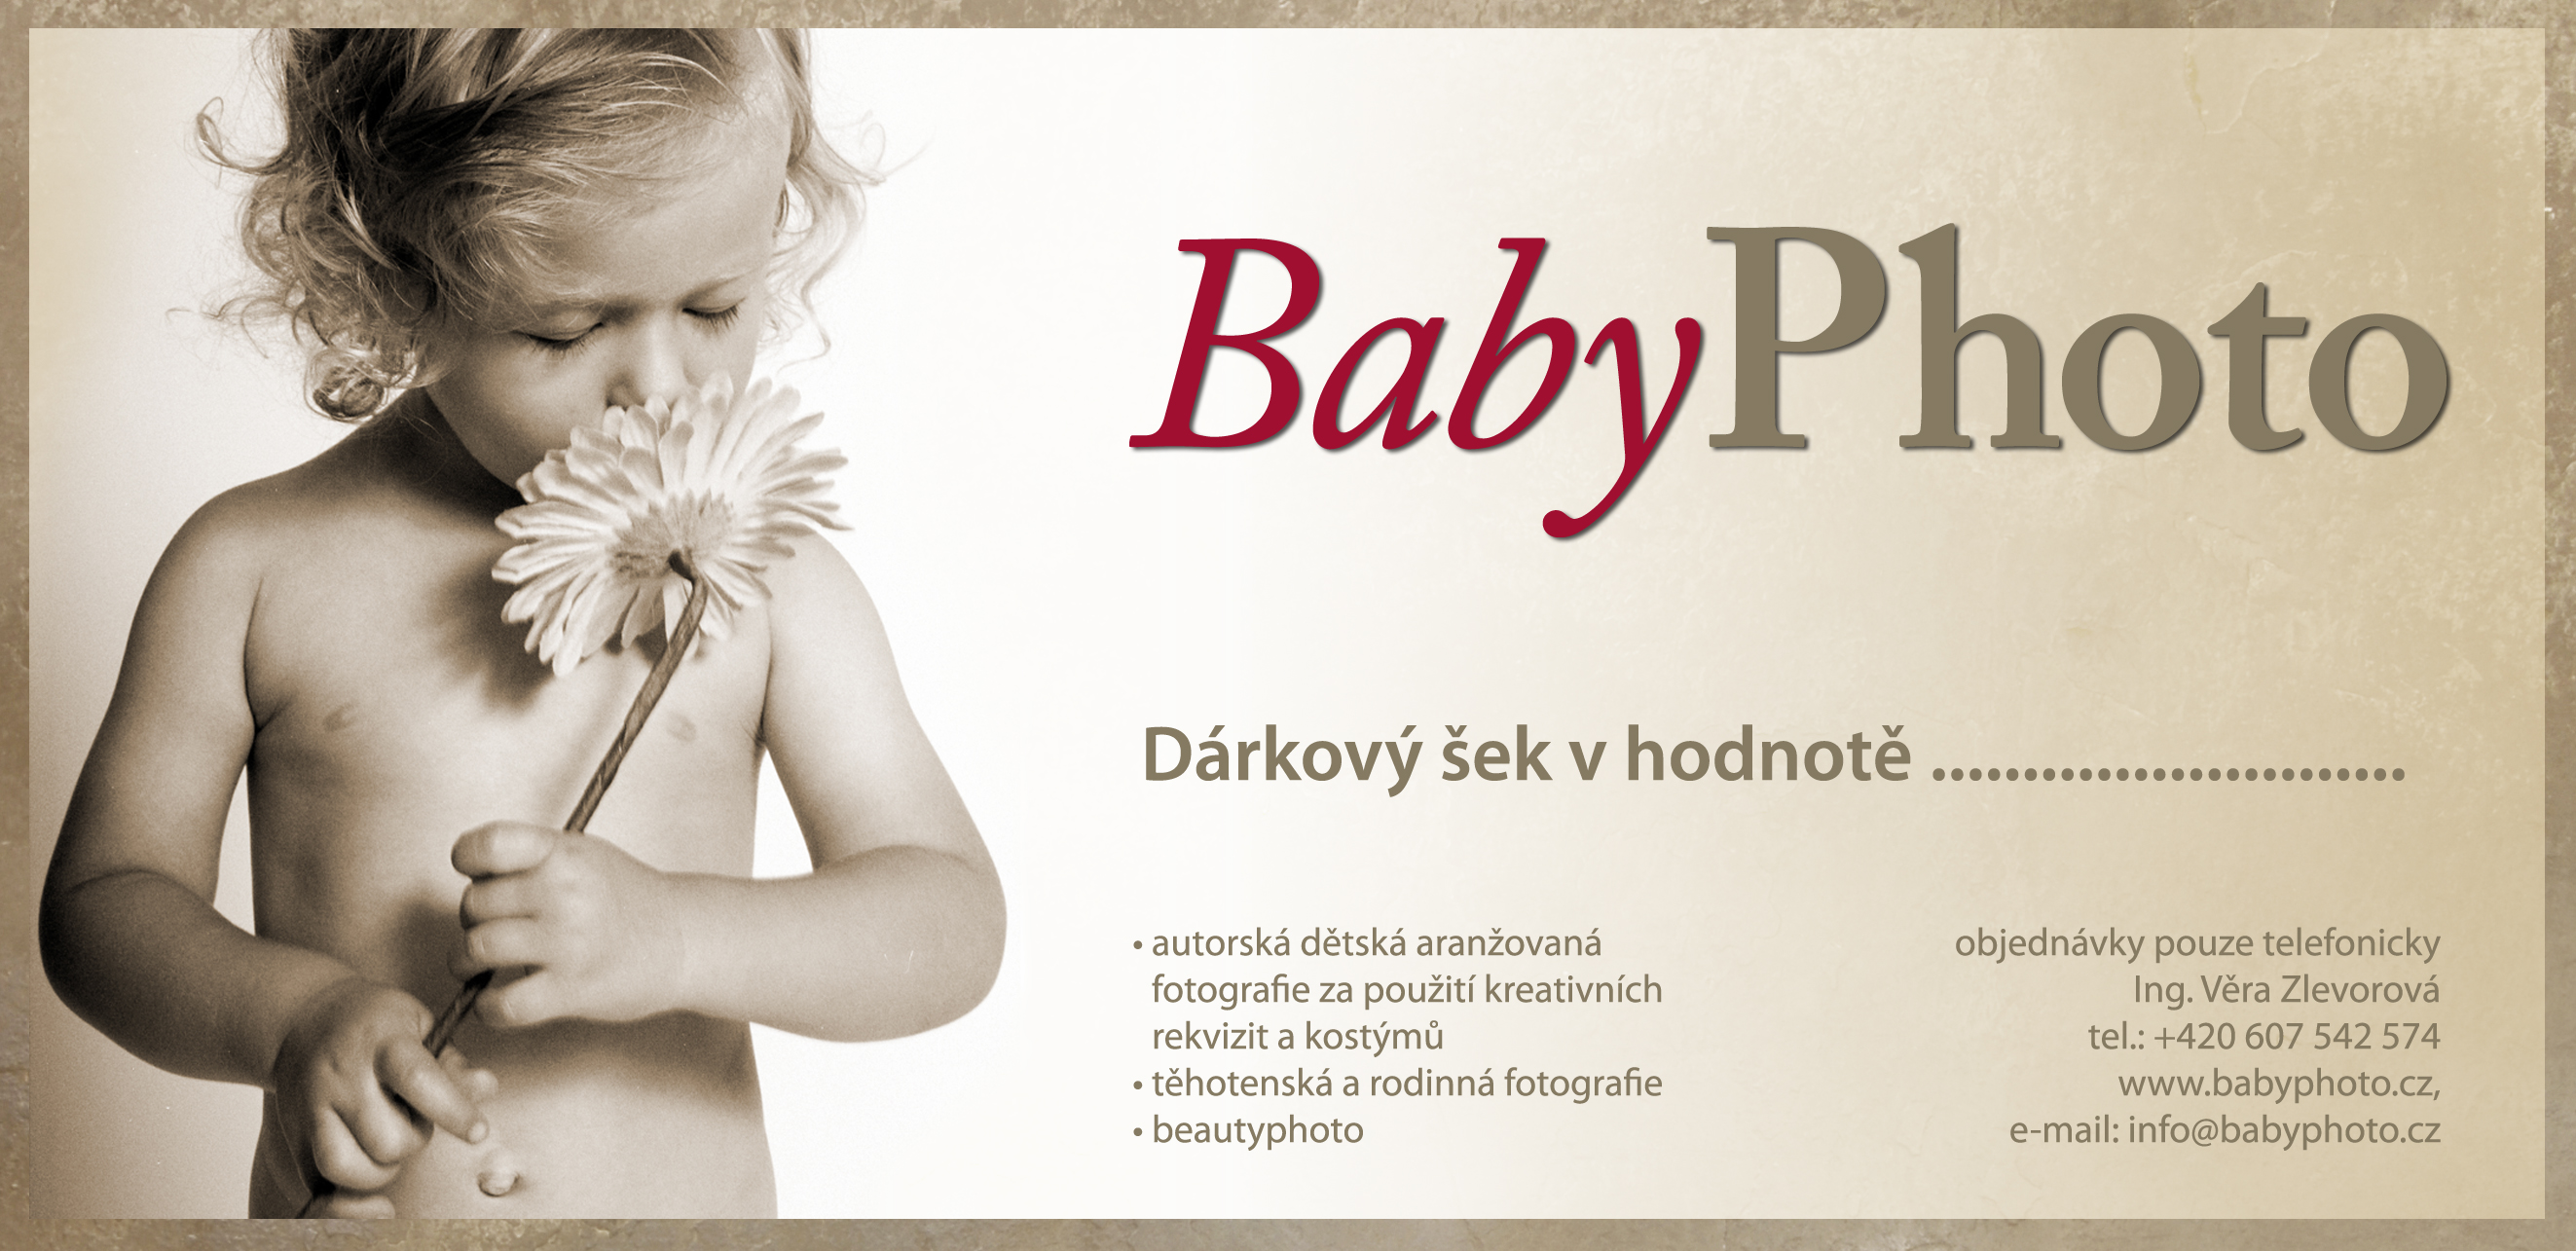 prices photo services, professional photography, kids pictures